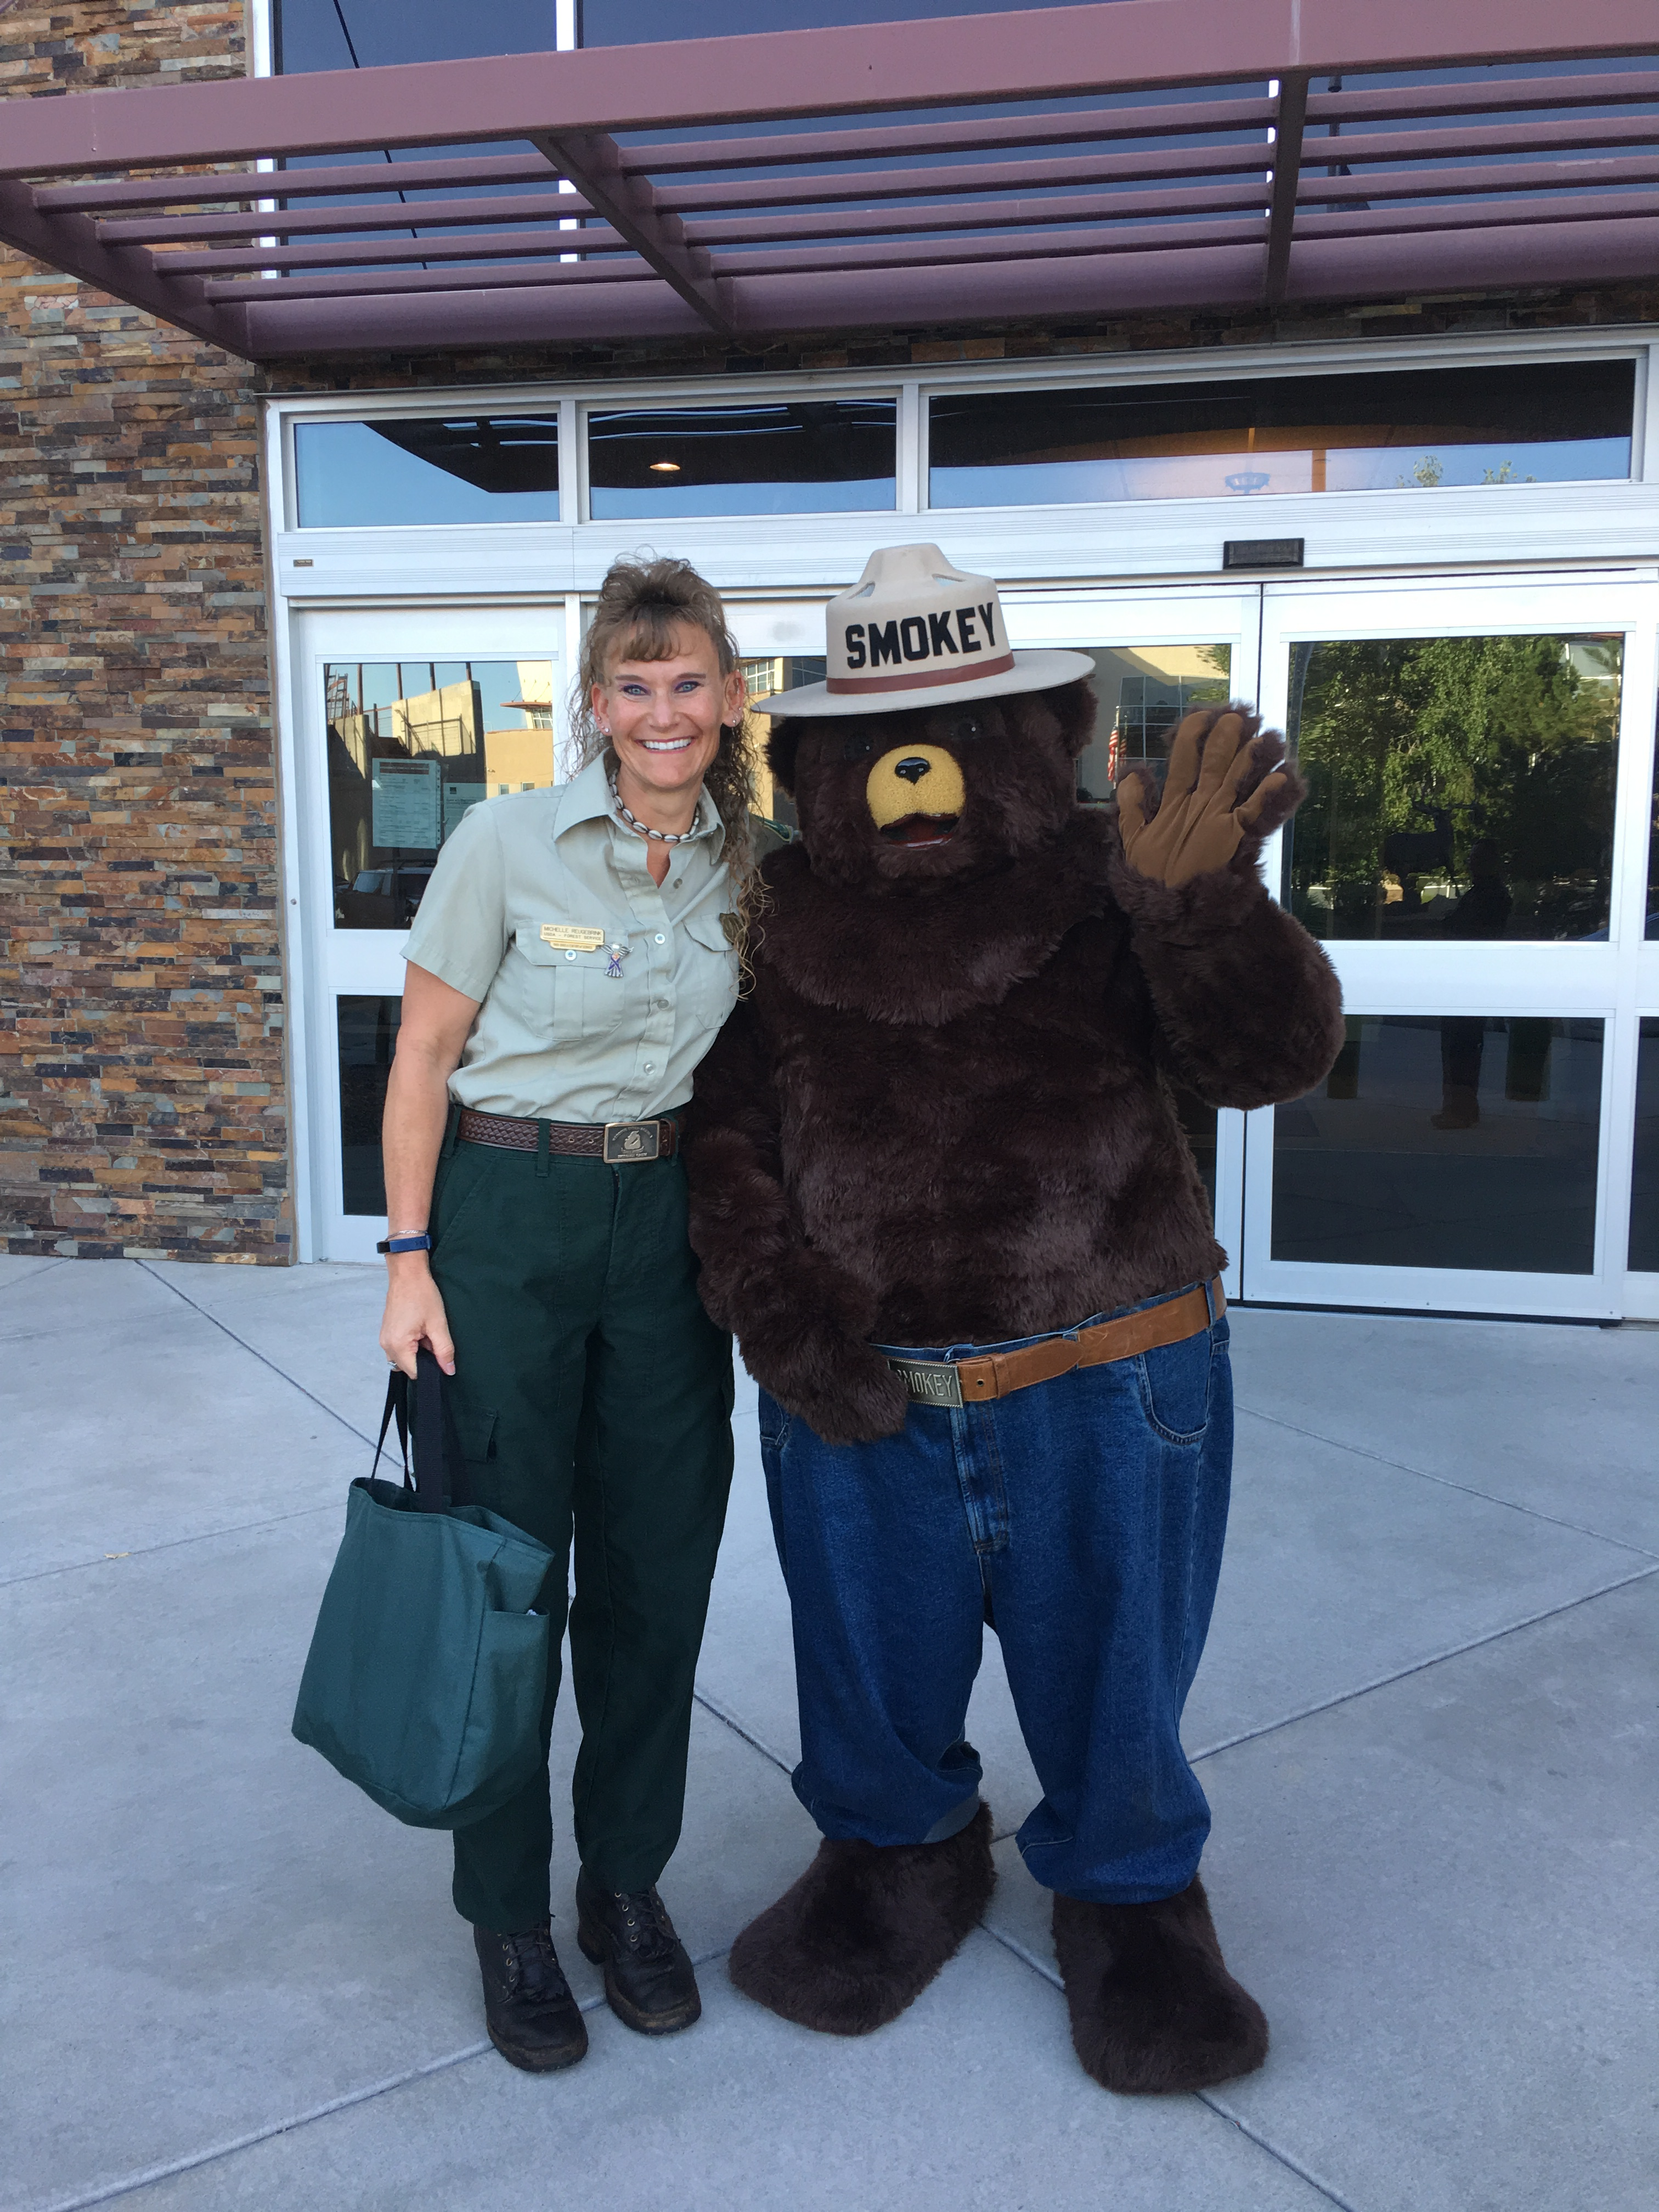 A picture of Michelle Reugebrink with Smokey Bear